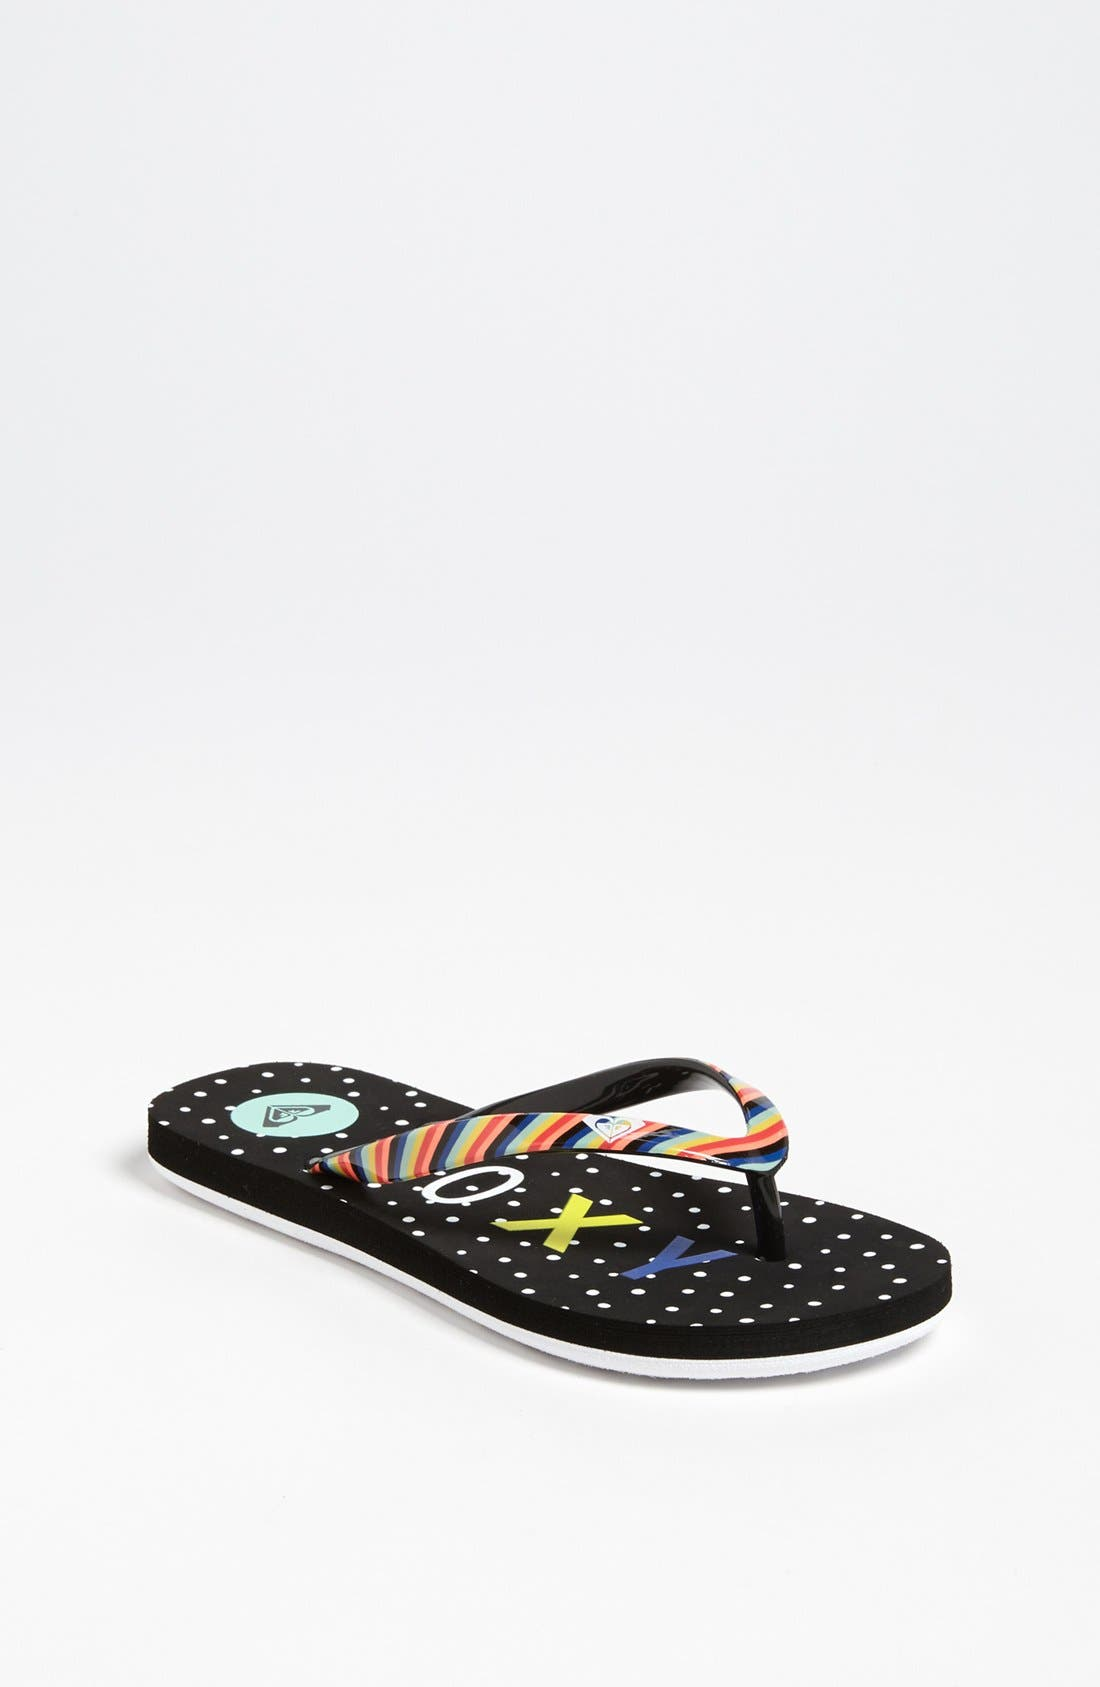 Alternate Image 1 Selected - 'Pebbles' Sandal (Toddler, Little Kid & Big Kid)